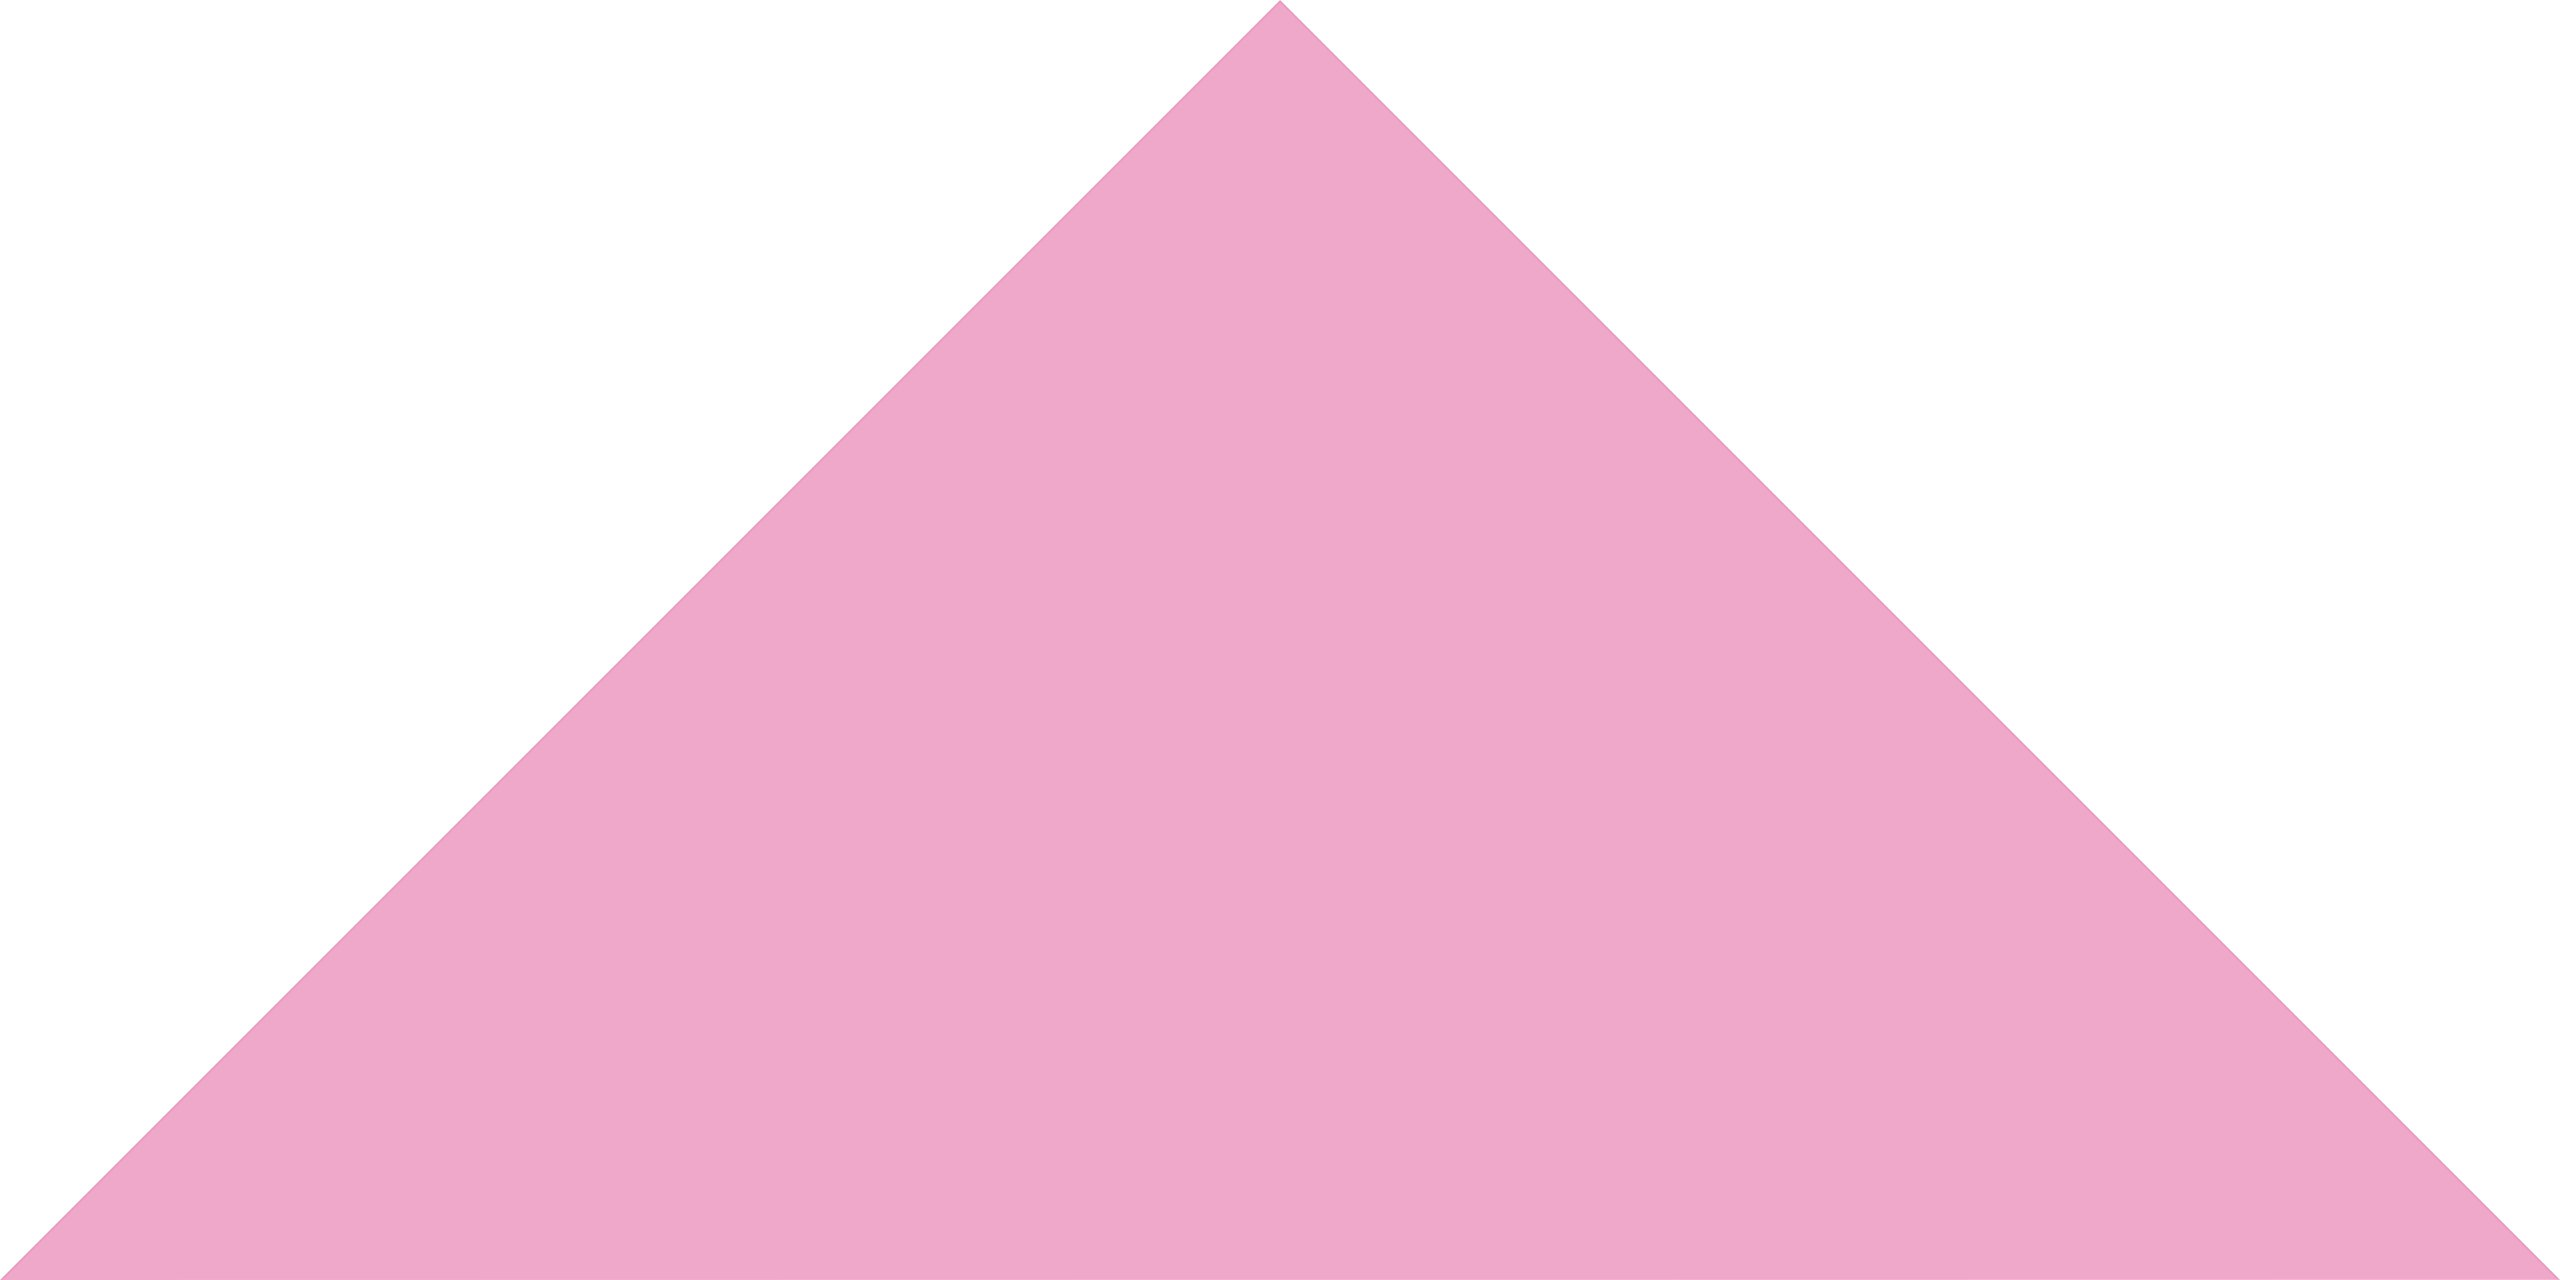 Carnation Pink Large Triangle Wall Pattern - Set of 12 - Pattern Vinyl Wall Art Decal for Homes, Offices, Kids Rooms, Nurseries, Schools, High Schools, Colleges, Universities